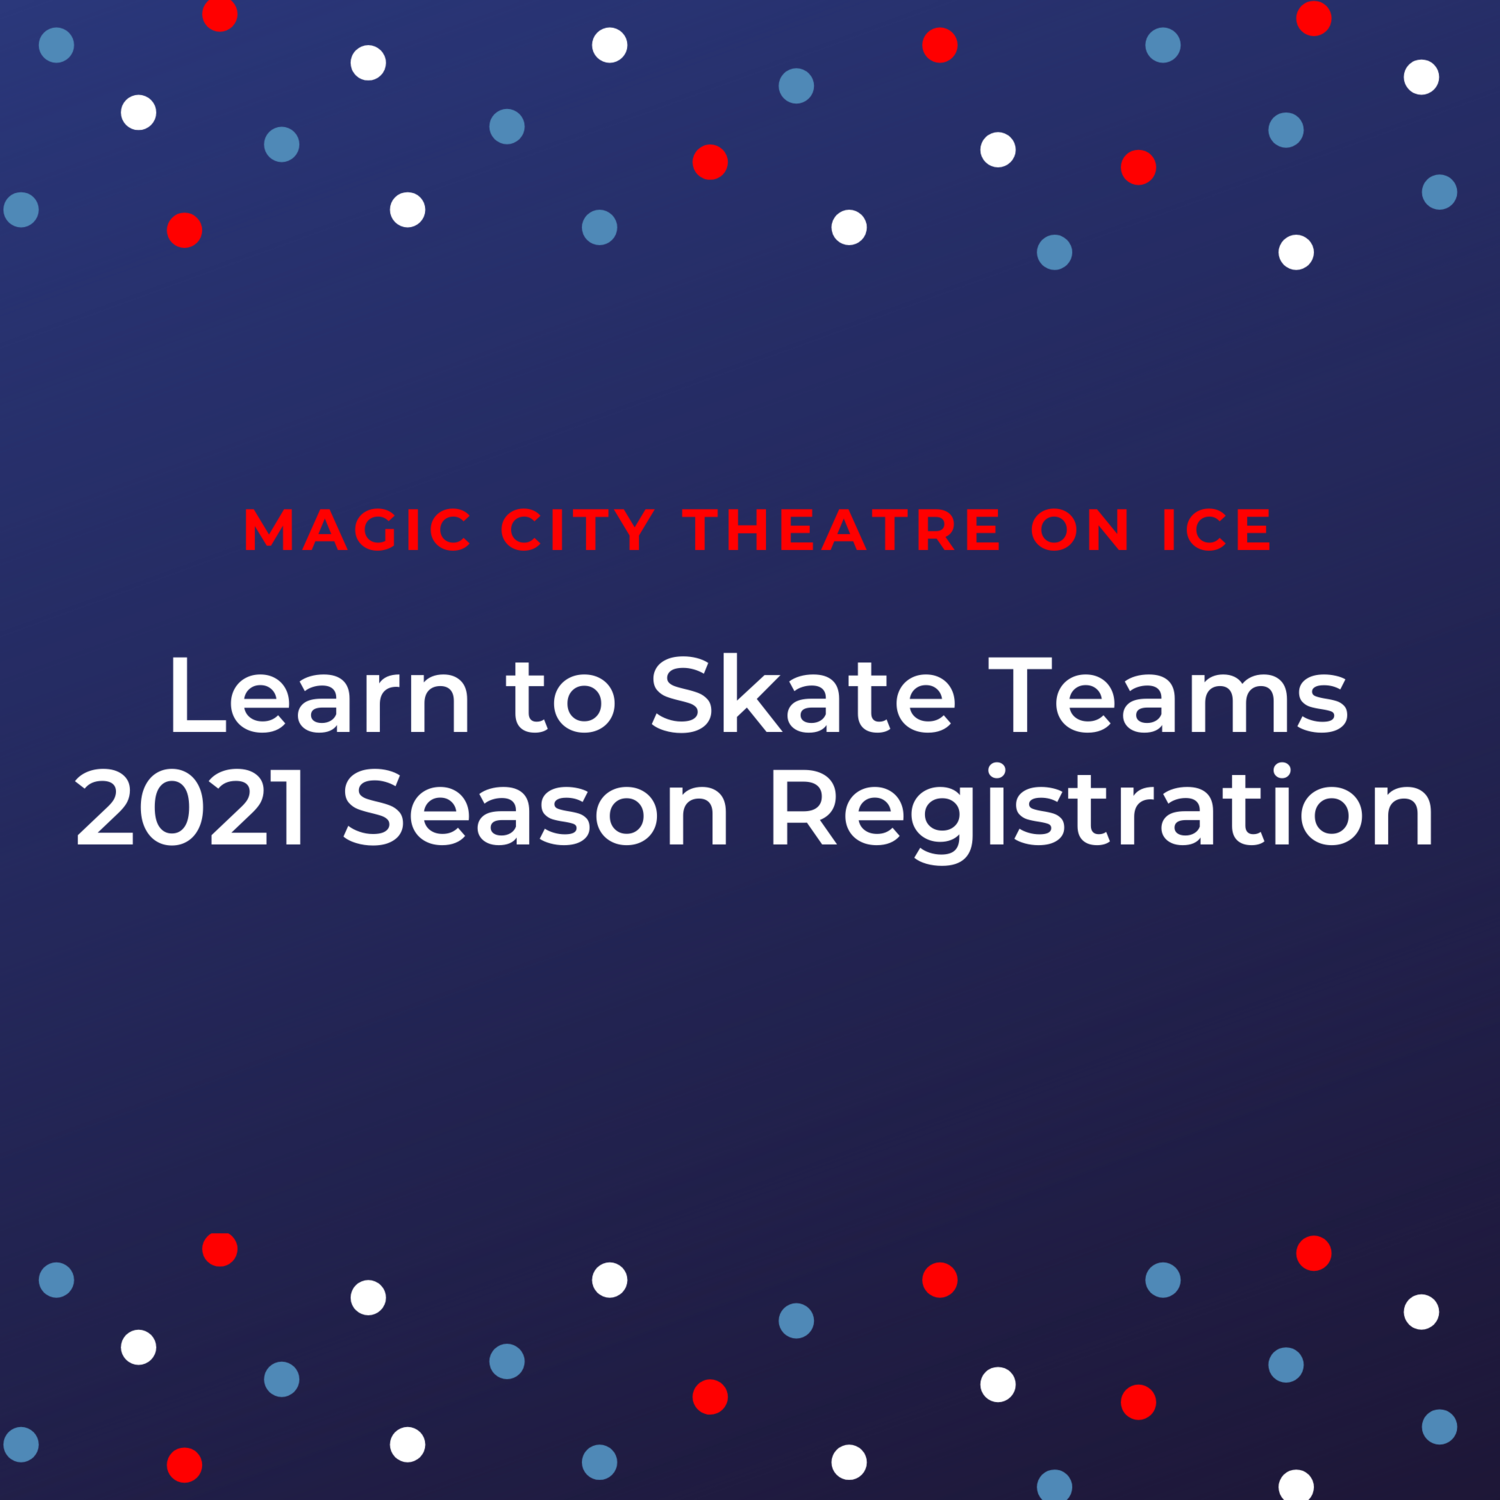 2021 Learn to Skate TOI Registration